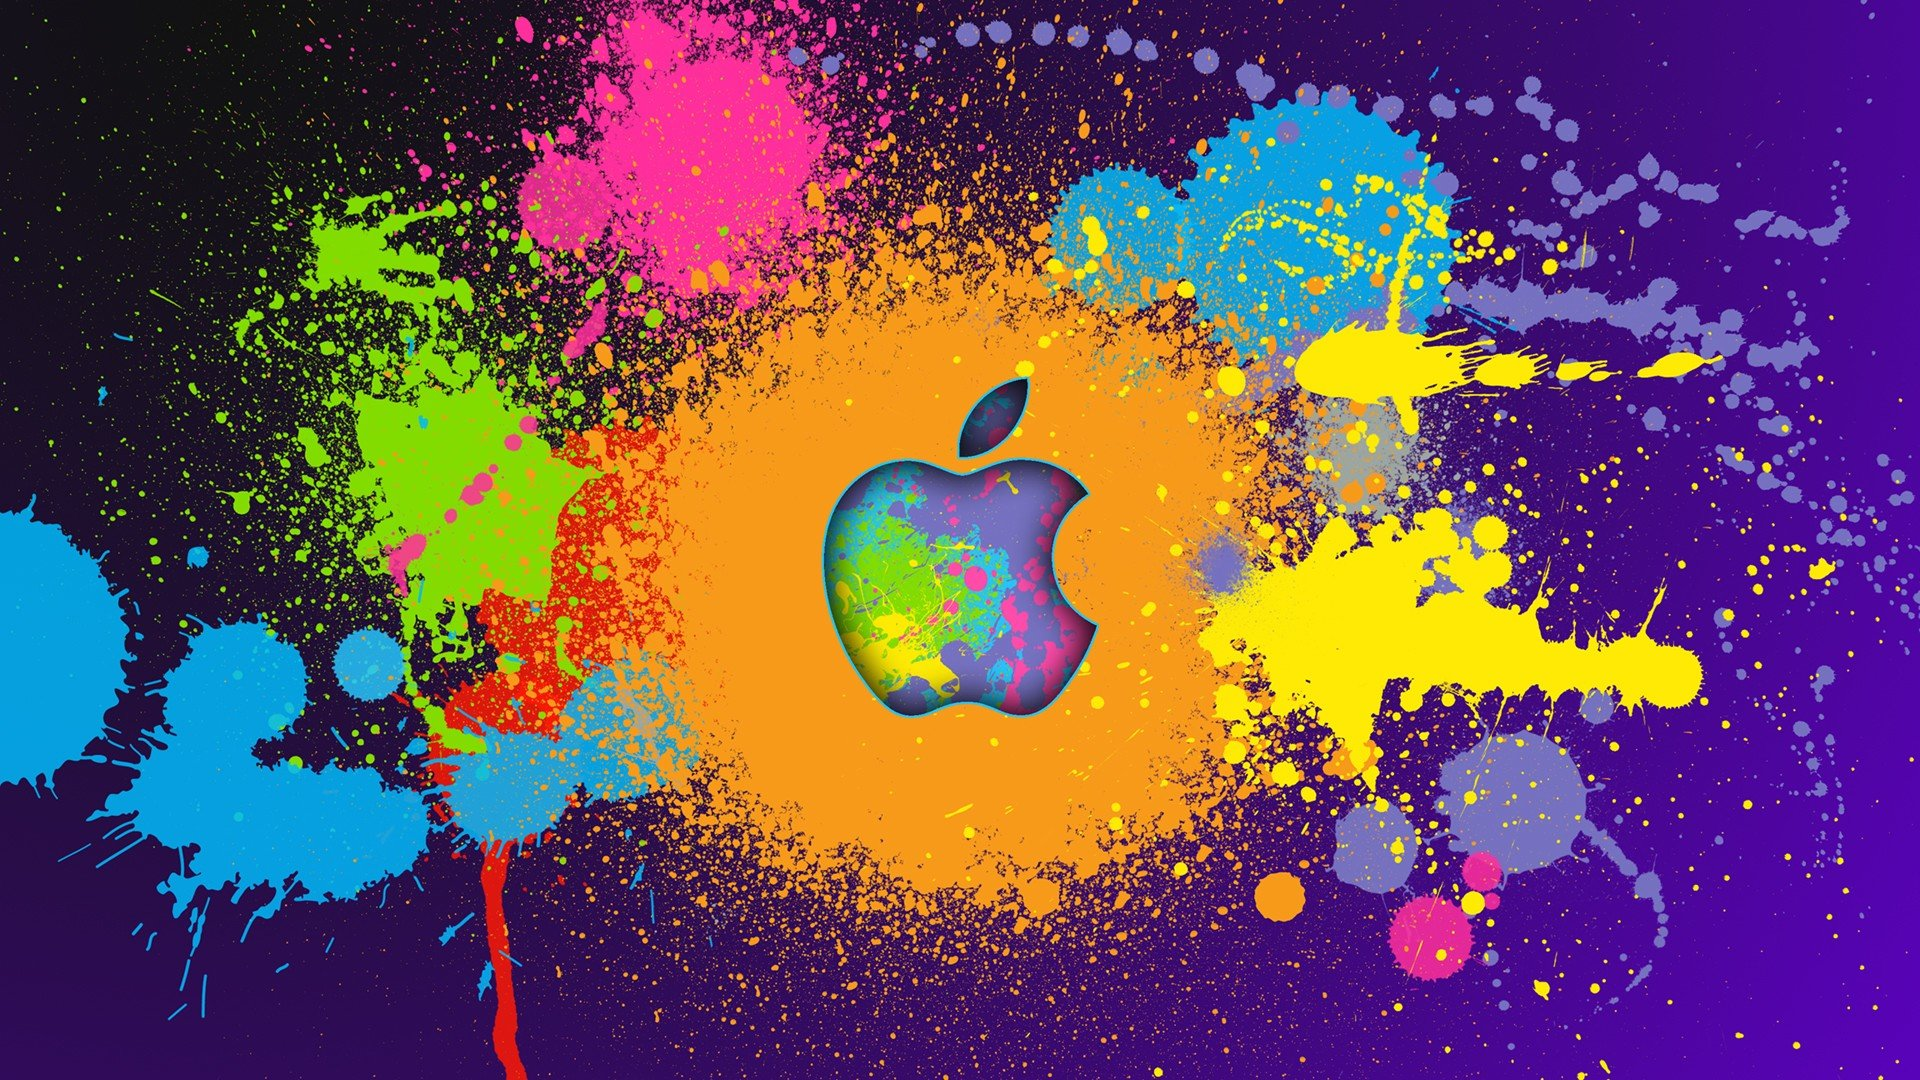 Free Apple high quality wallpaper ID:296261 for hd 1920x1080 PC